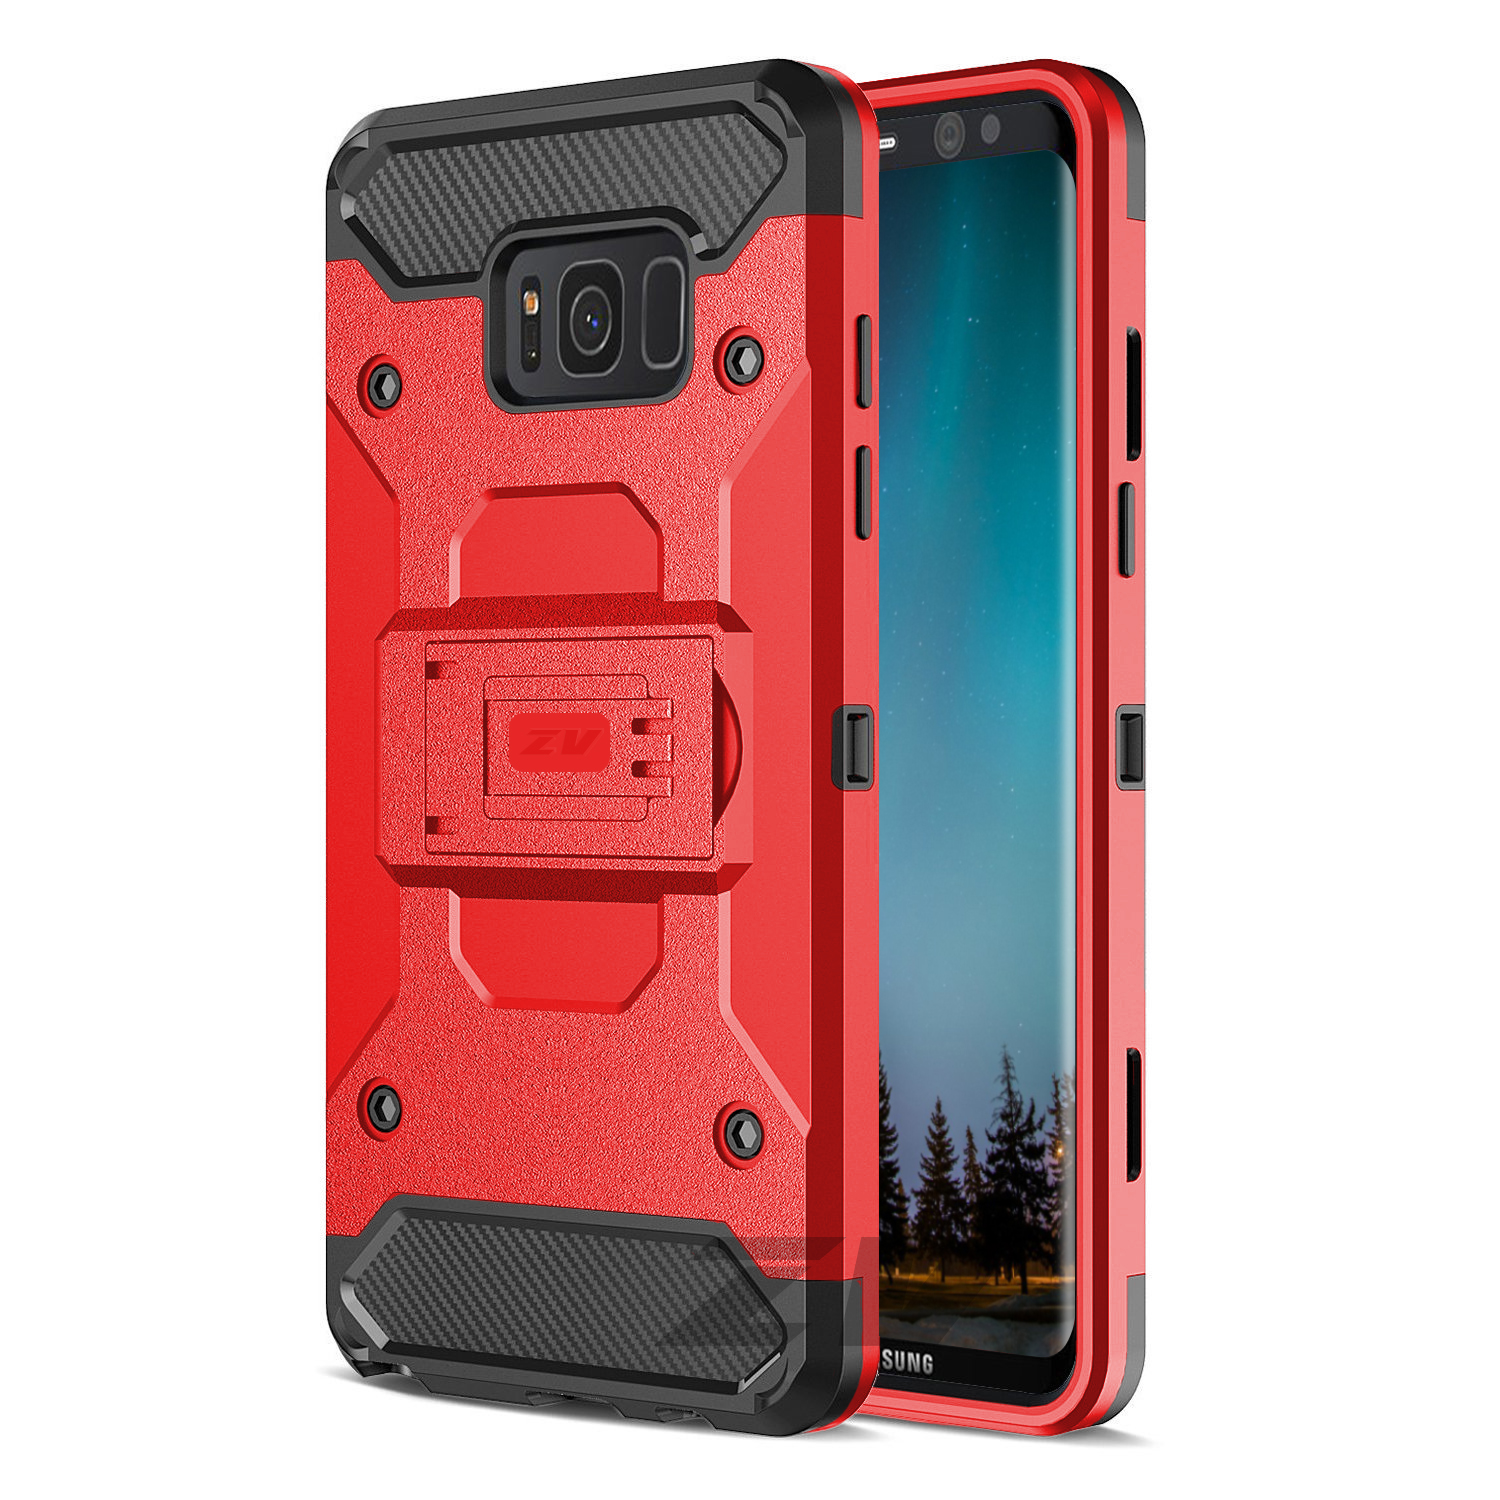 Samsung Galaxy S8/S8 Plus Case, Zizo Tough Armor Cover w/ Holster and Kickstand